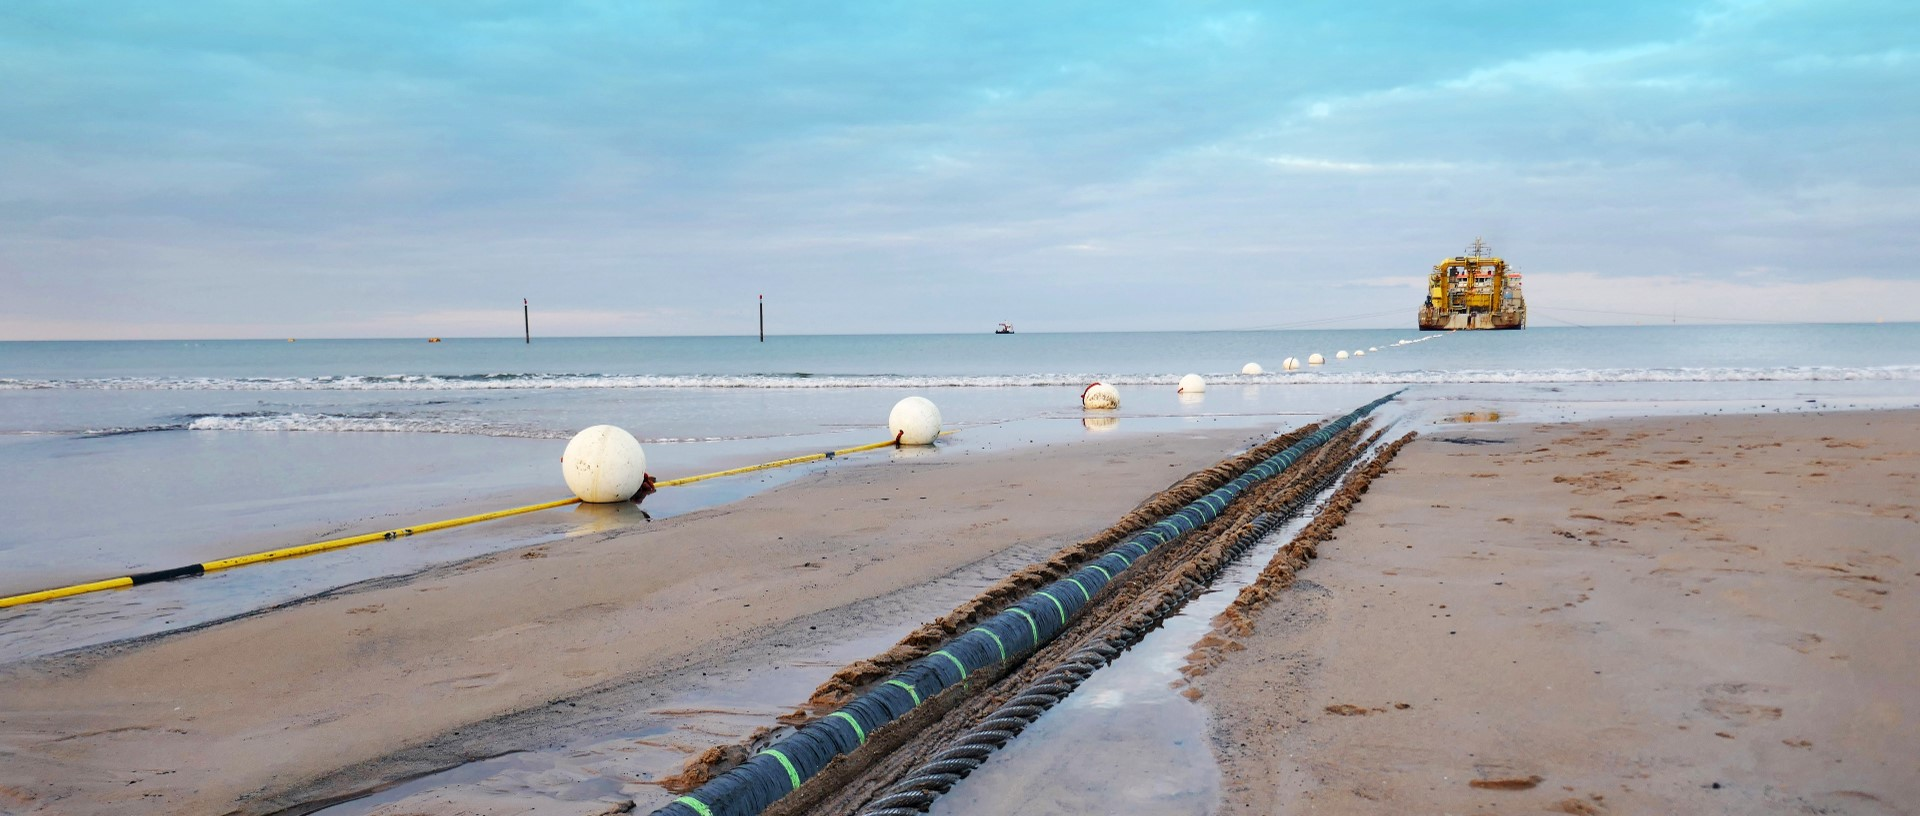 Subsea cable installation track monitoring and registration plough